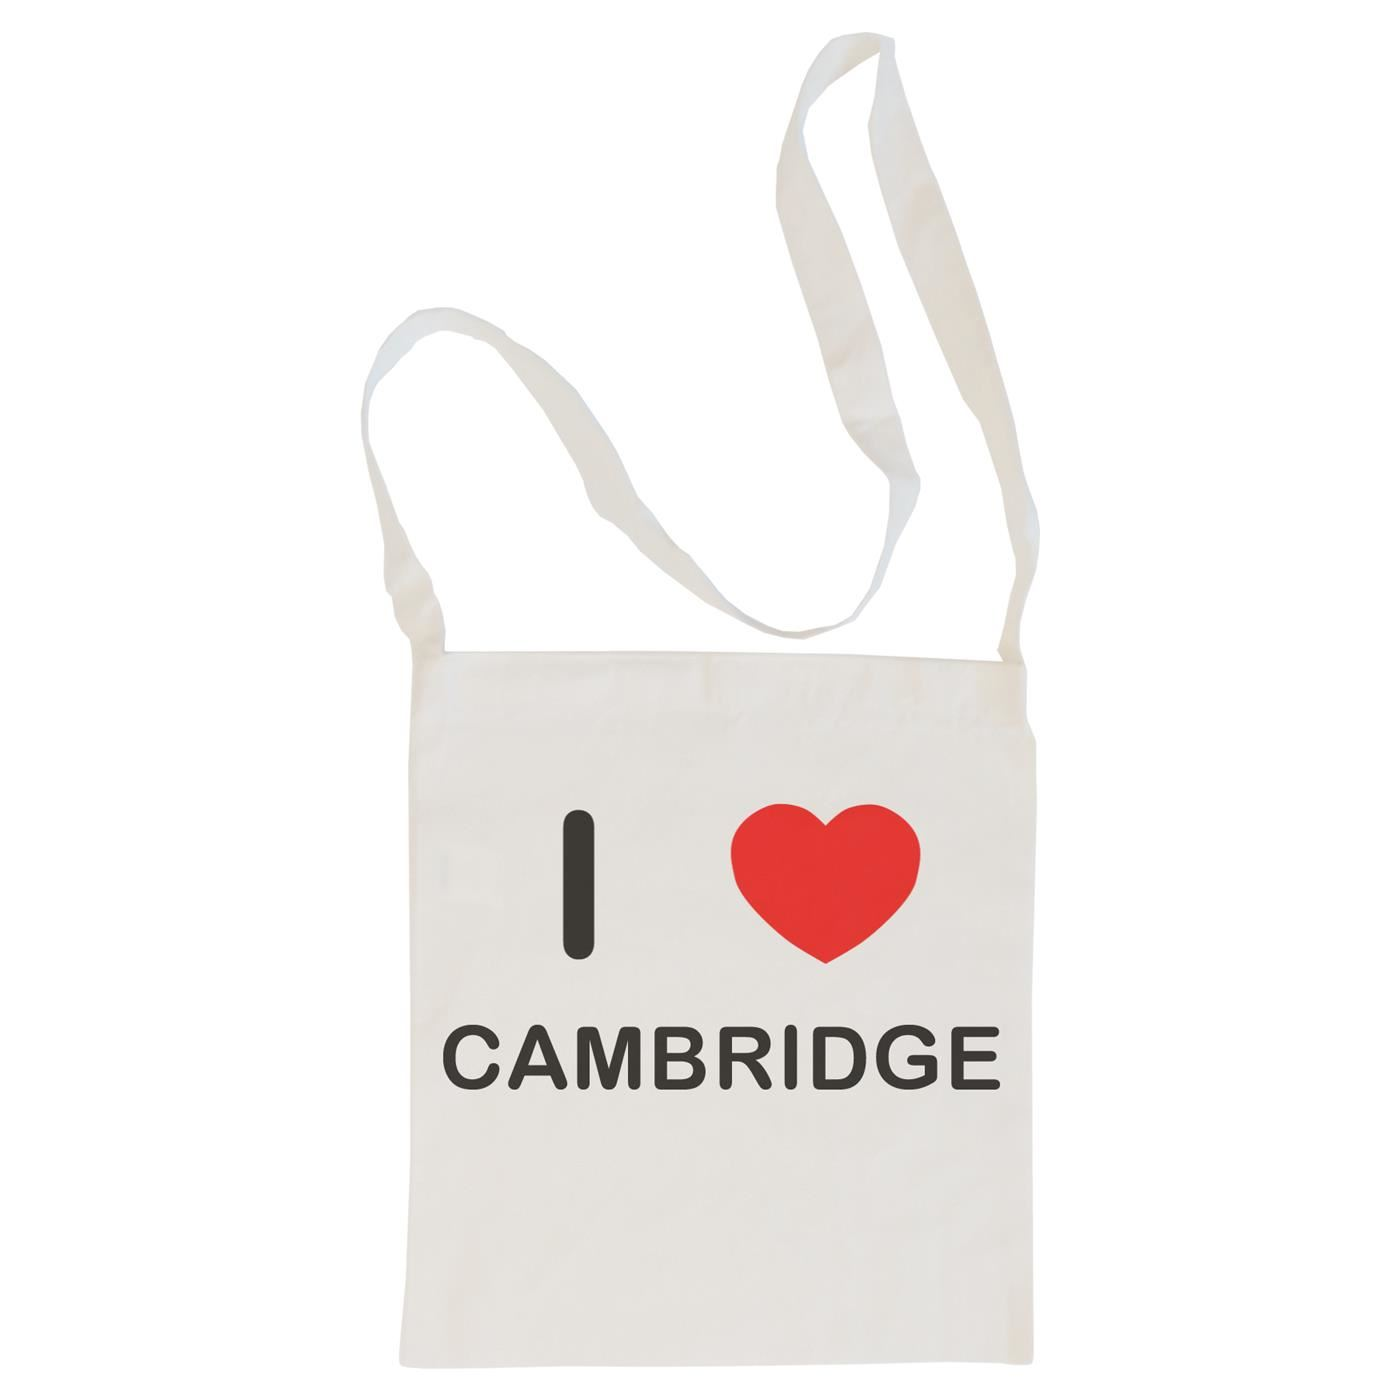 I Love Cambridge - Cotton Bag | Size choice Tote, Shopper or Sling